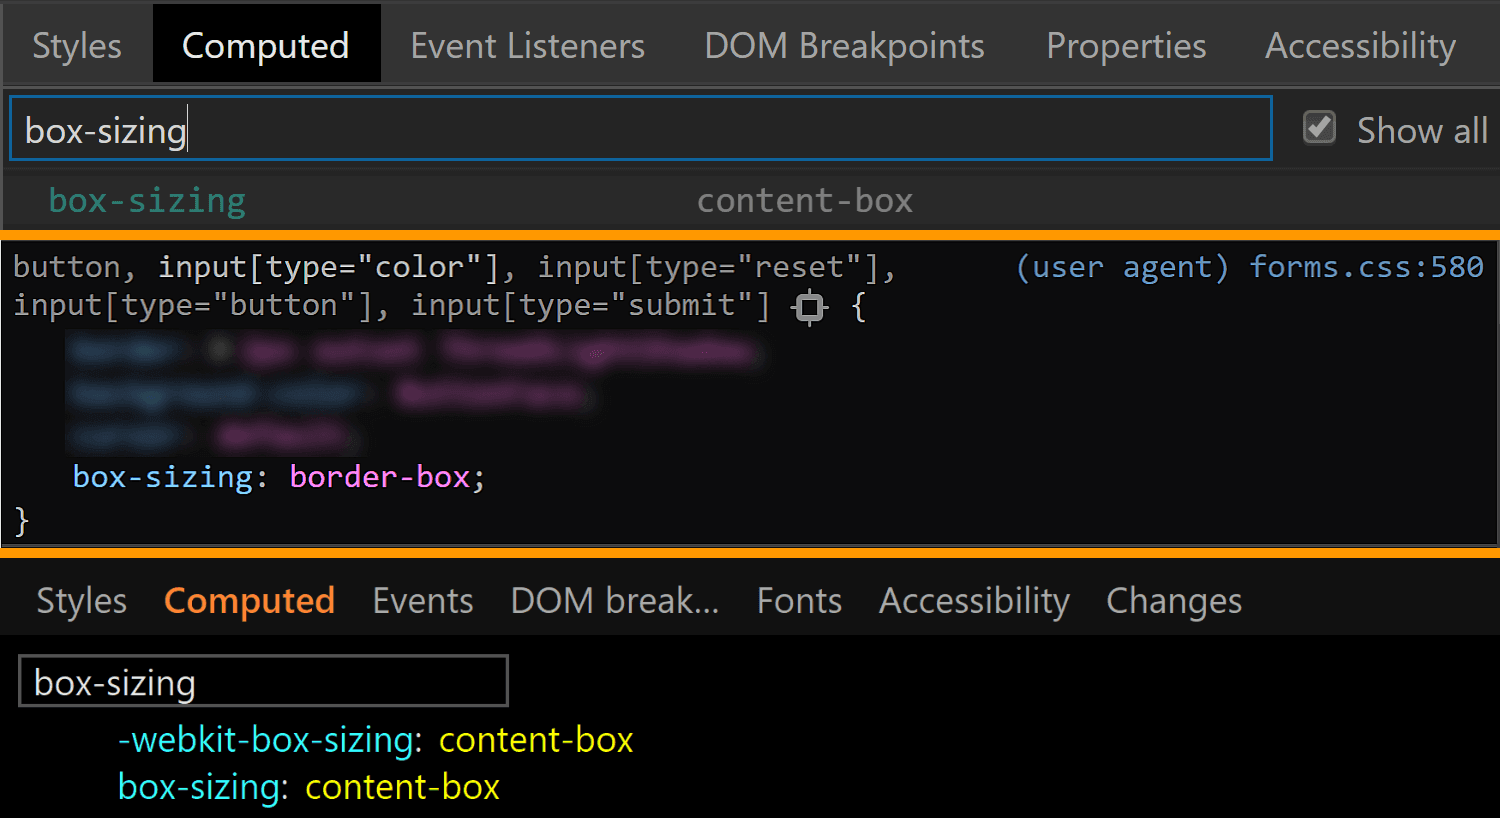 Comparative screenshots of DevTools in the three browsers showing the computed values of box-sizing for the actual input.